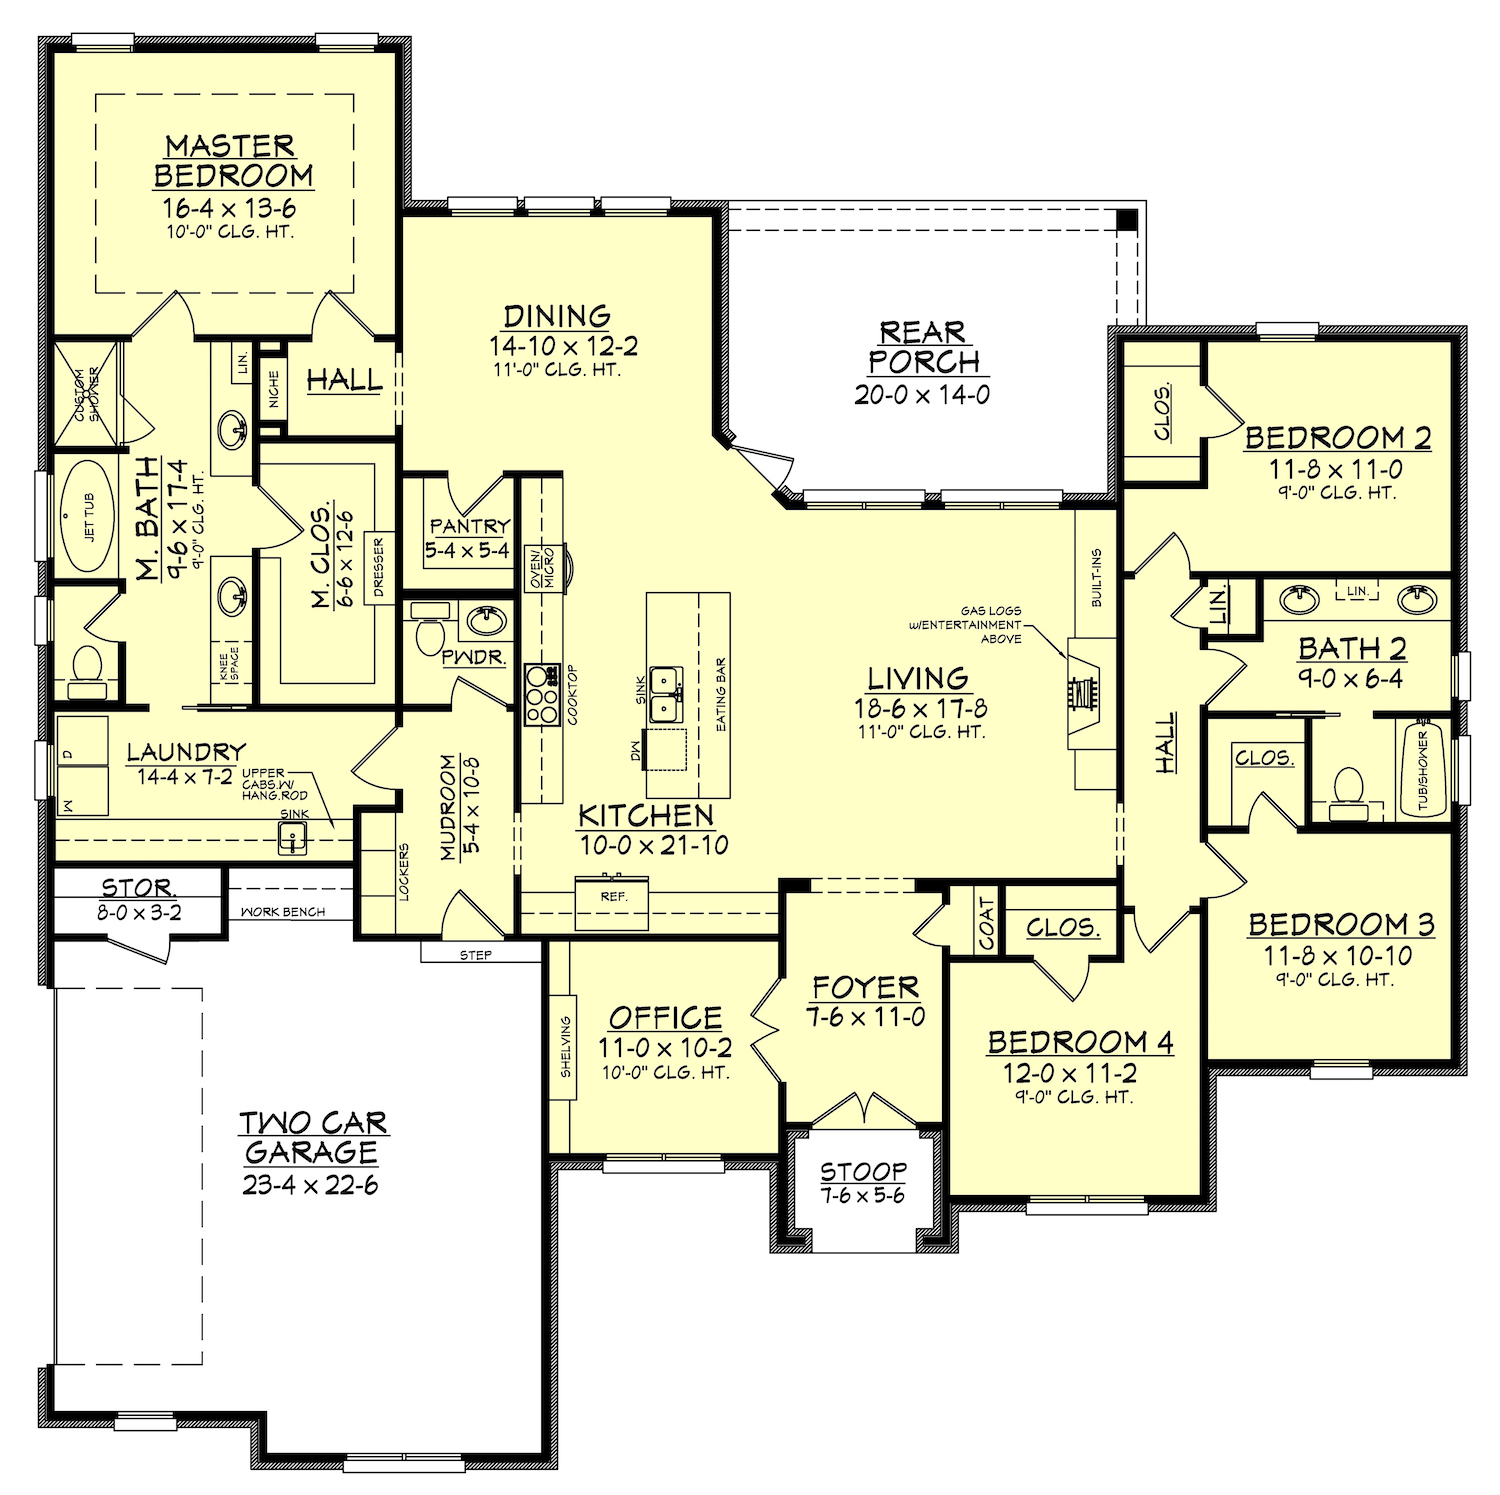 Bedroom Floor Layout 4 Bedrm 2506 Sq Ft European House Plan 142 1162